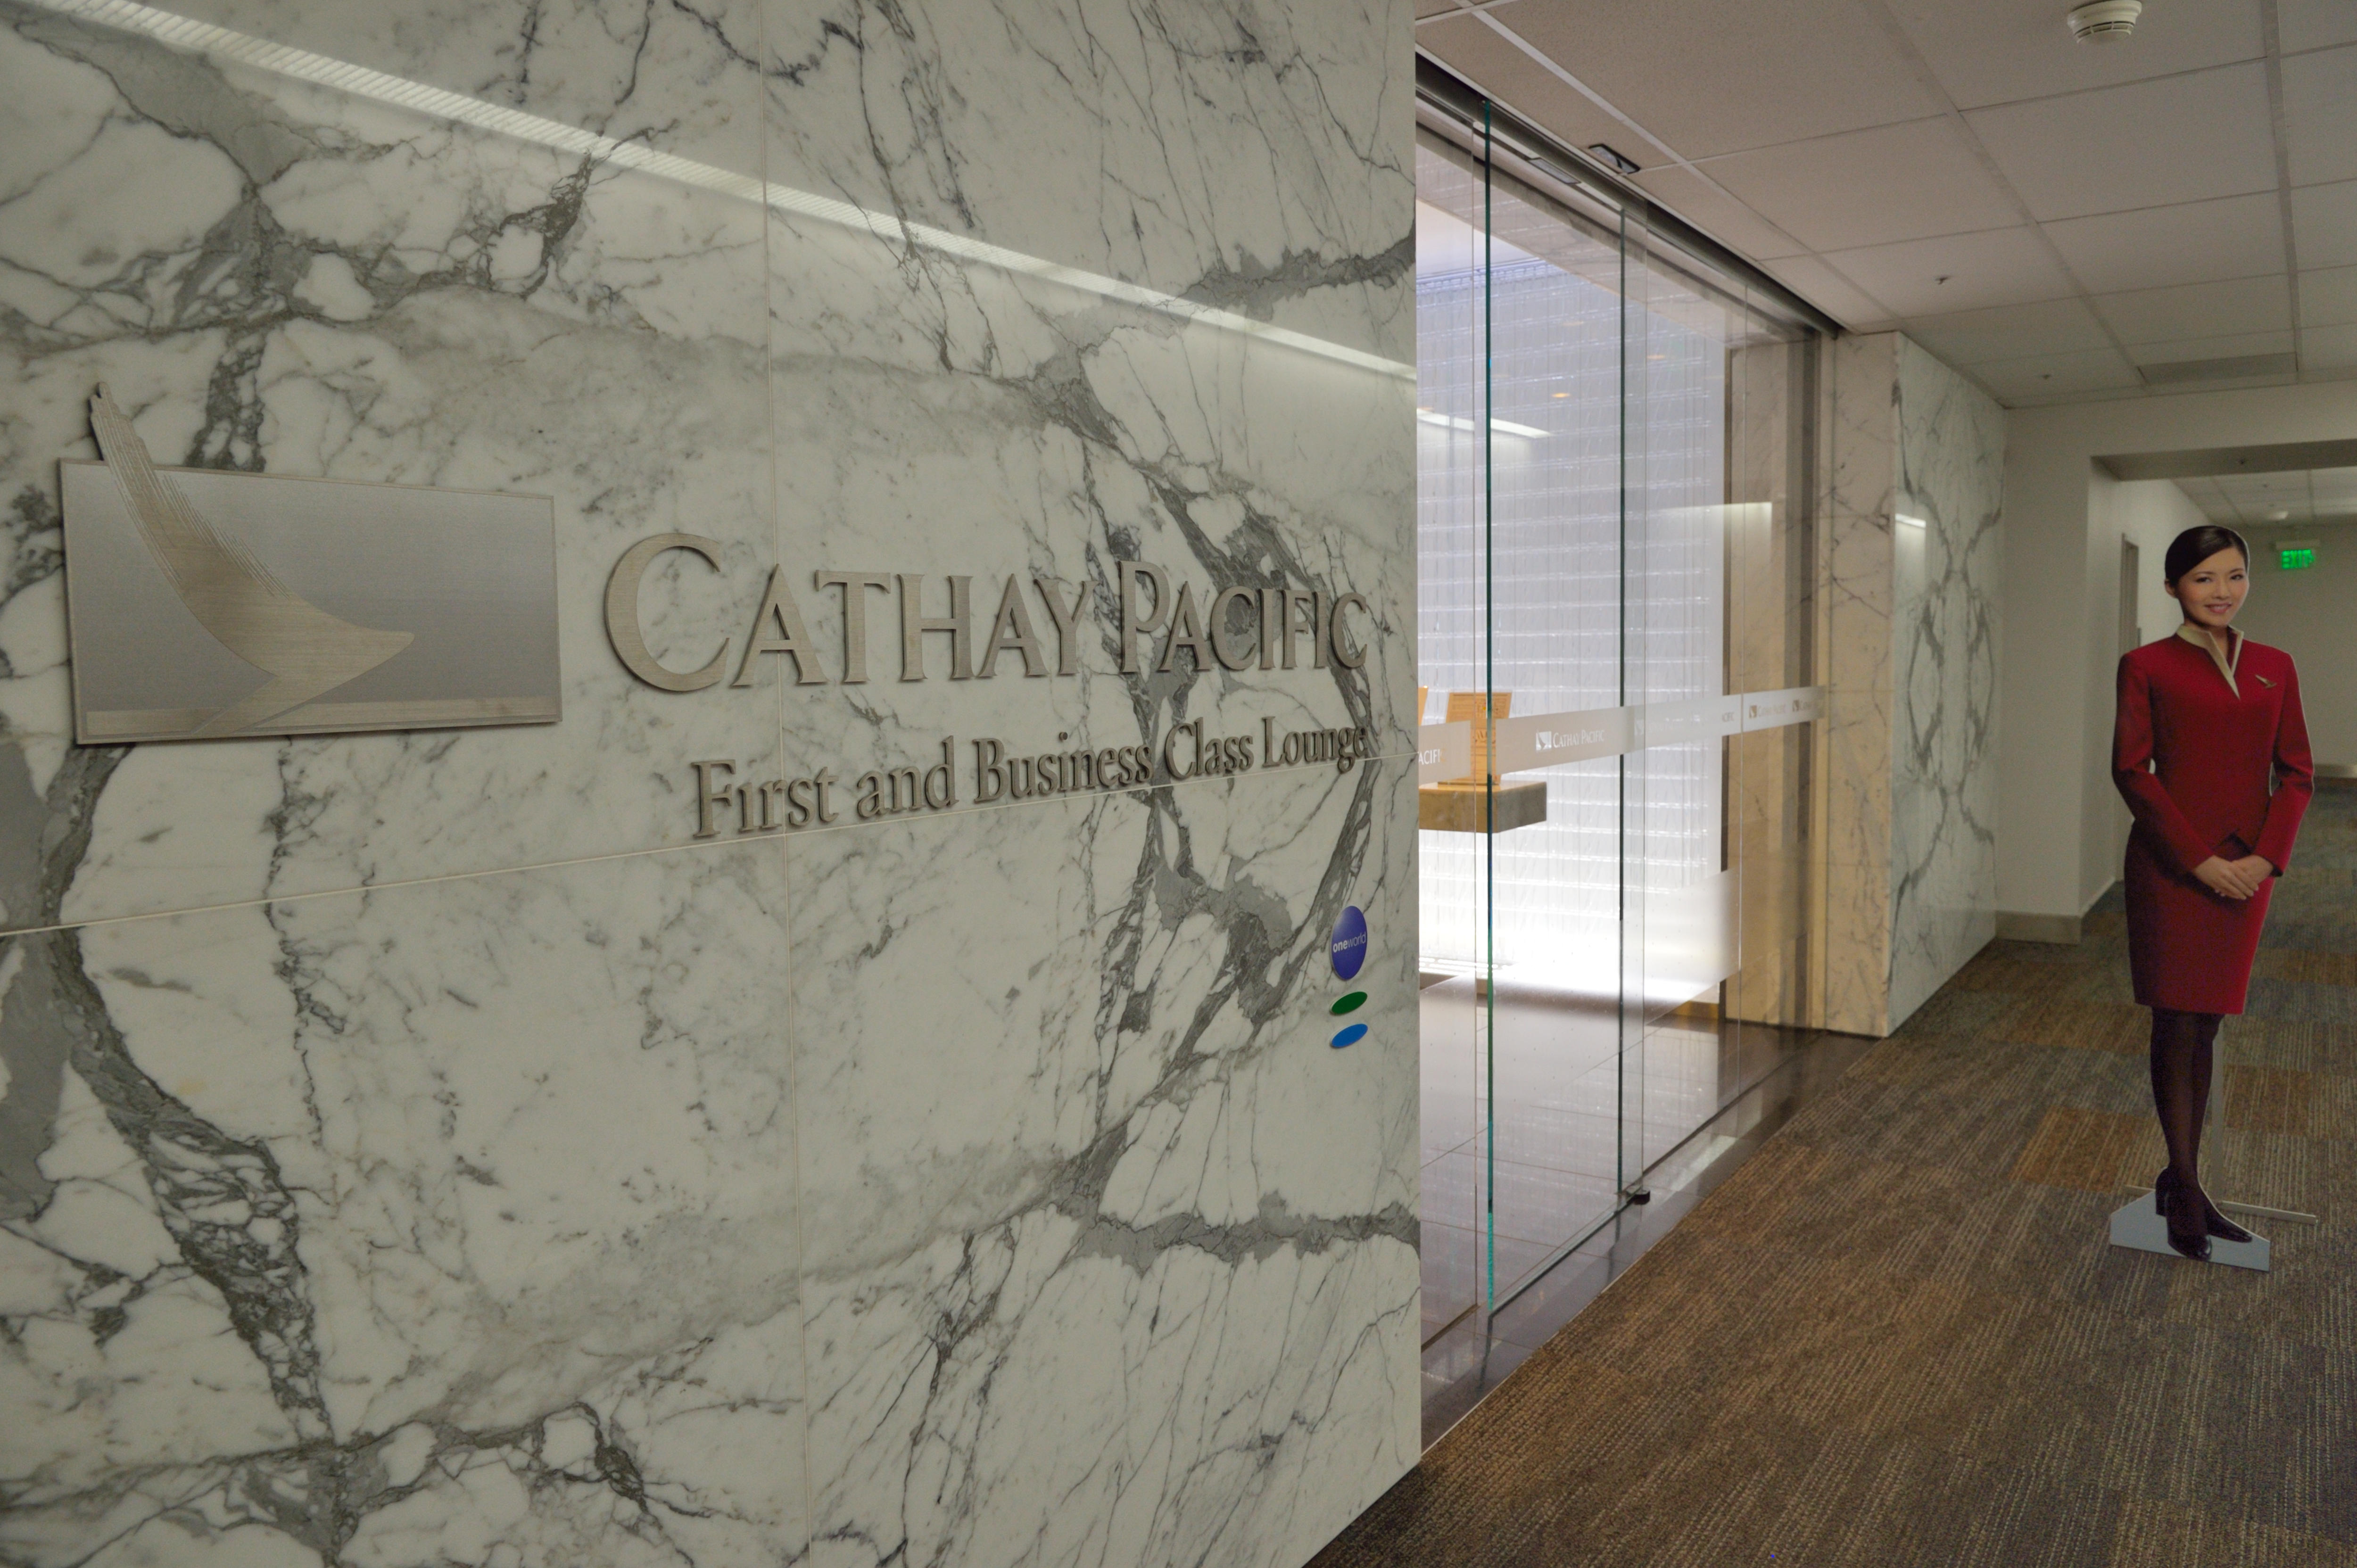 Business Travel with Cathay Pacific